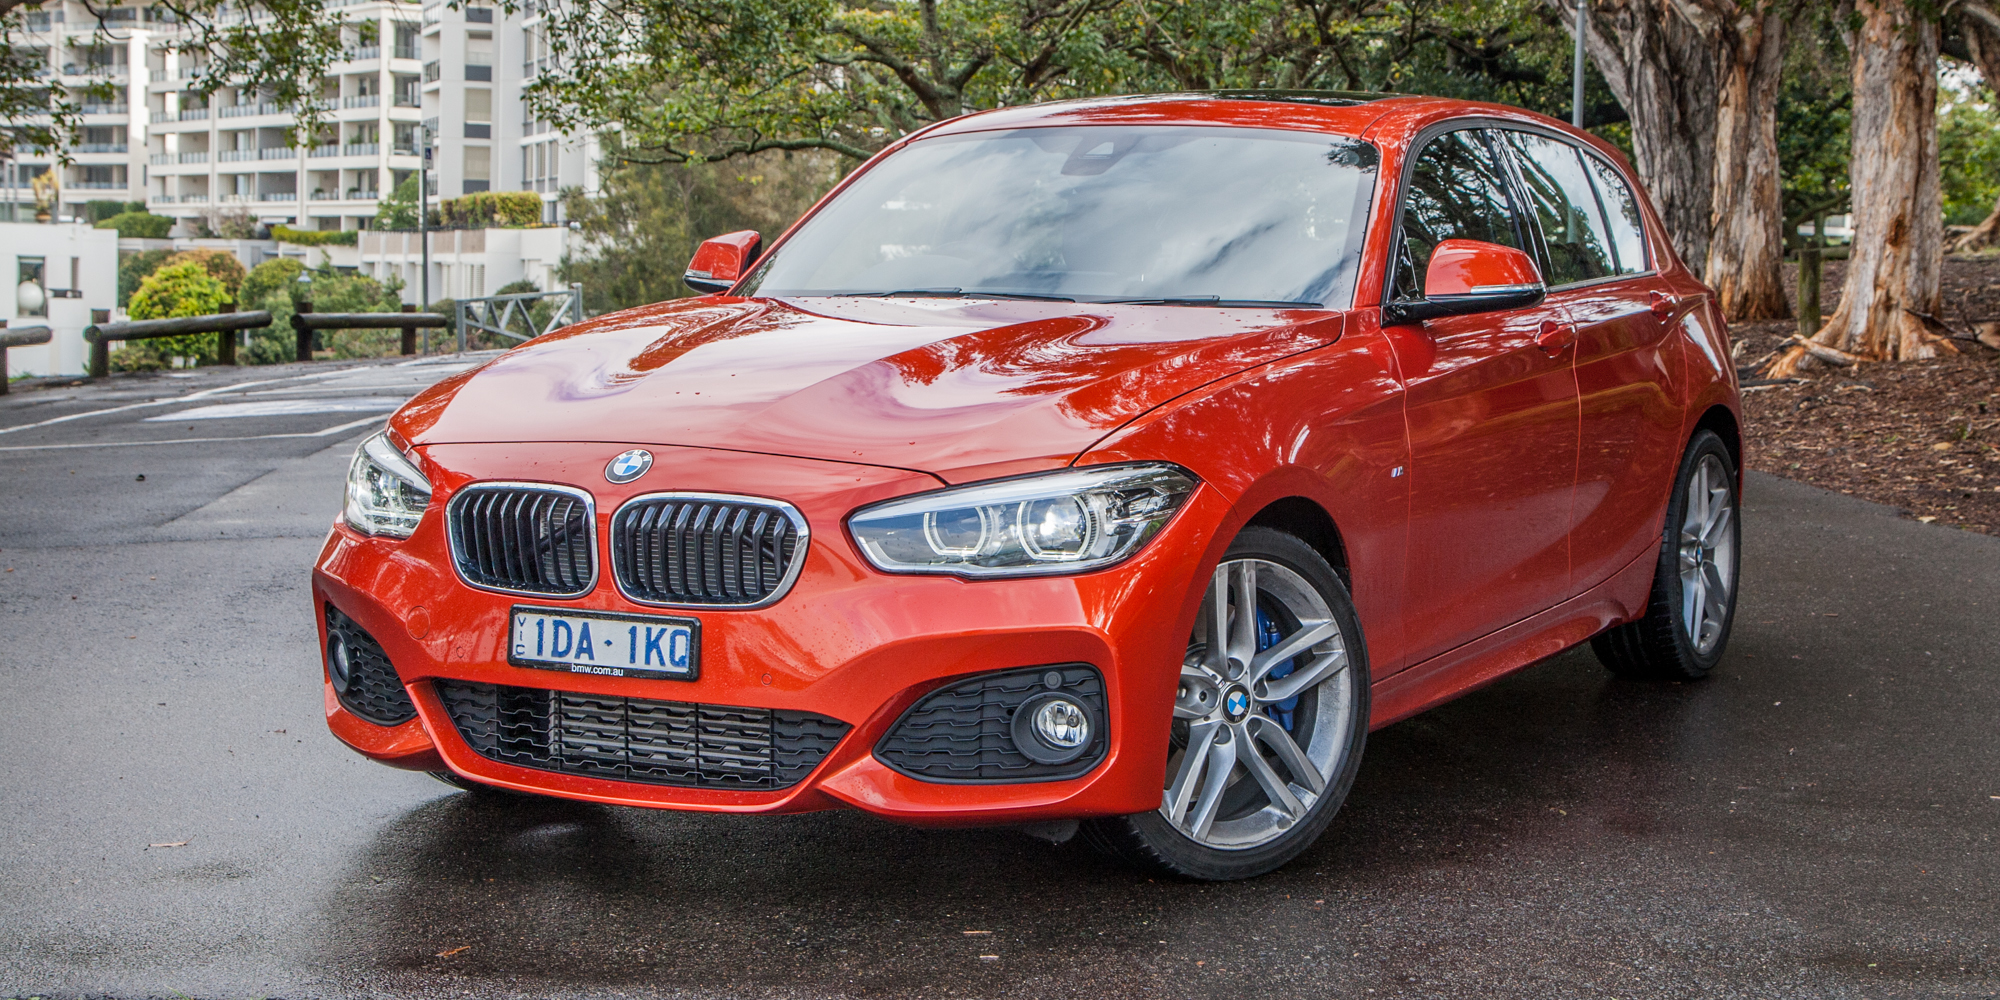 2015 Bmw 125i Review (Photo 13 of 15)